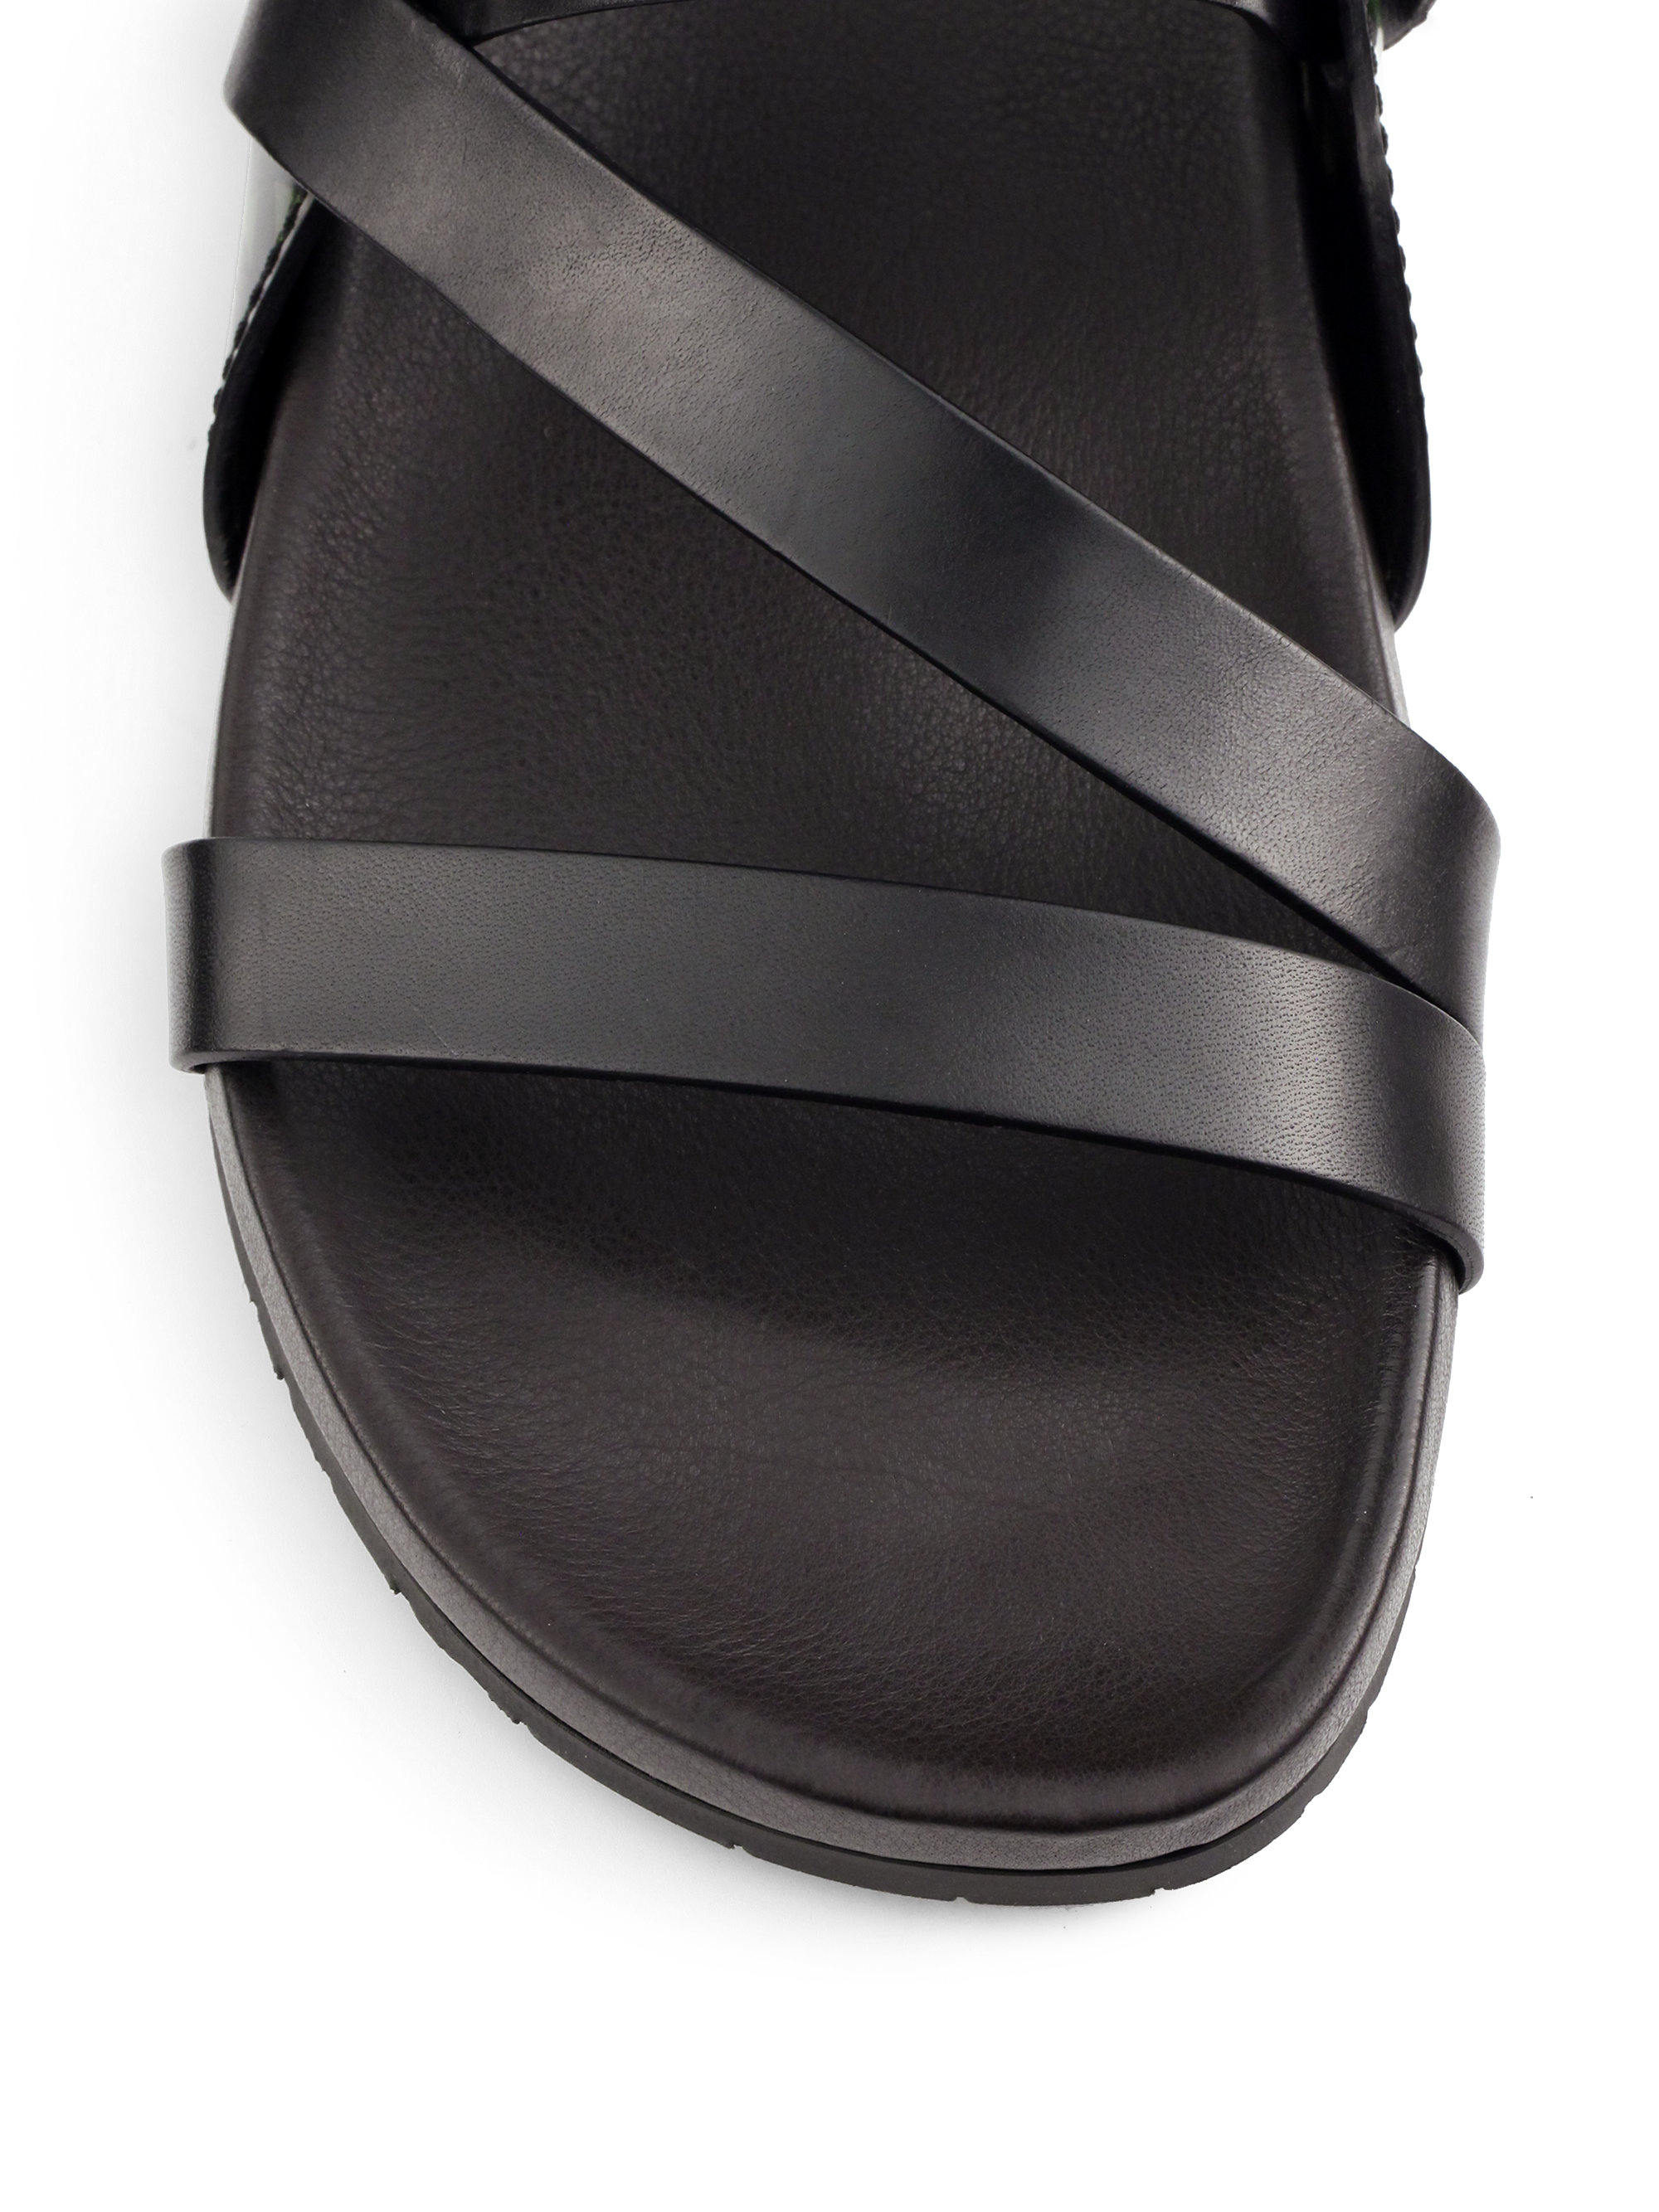 de20360b9137 Lyst - Jimmy Choo Hayman Leather Sandals in Black for Men